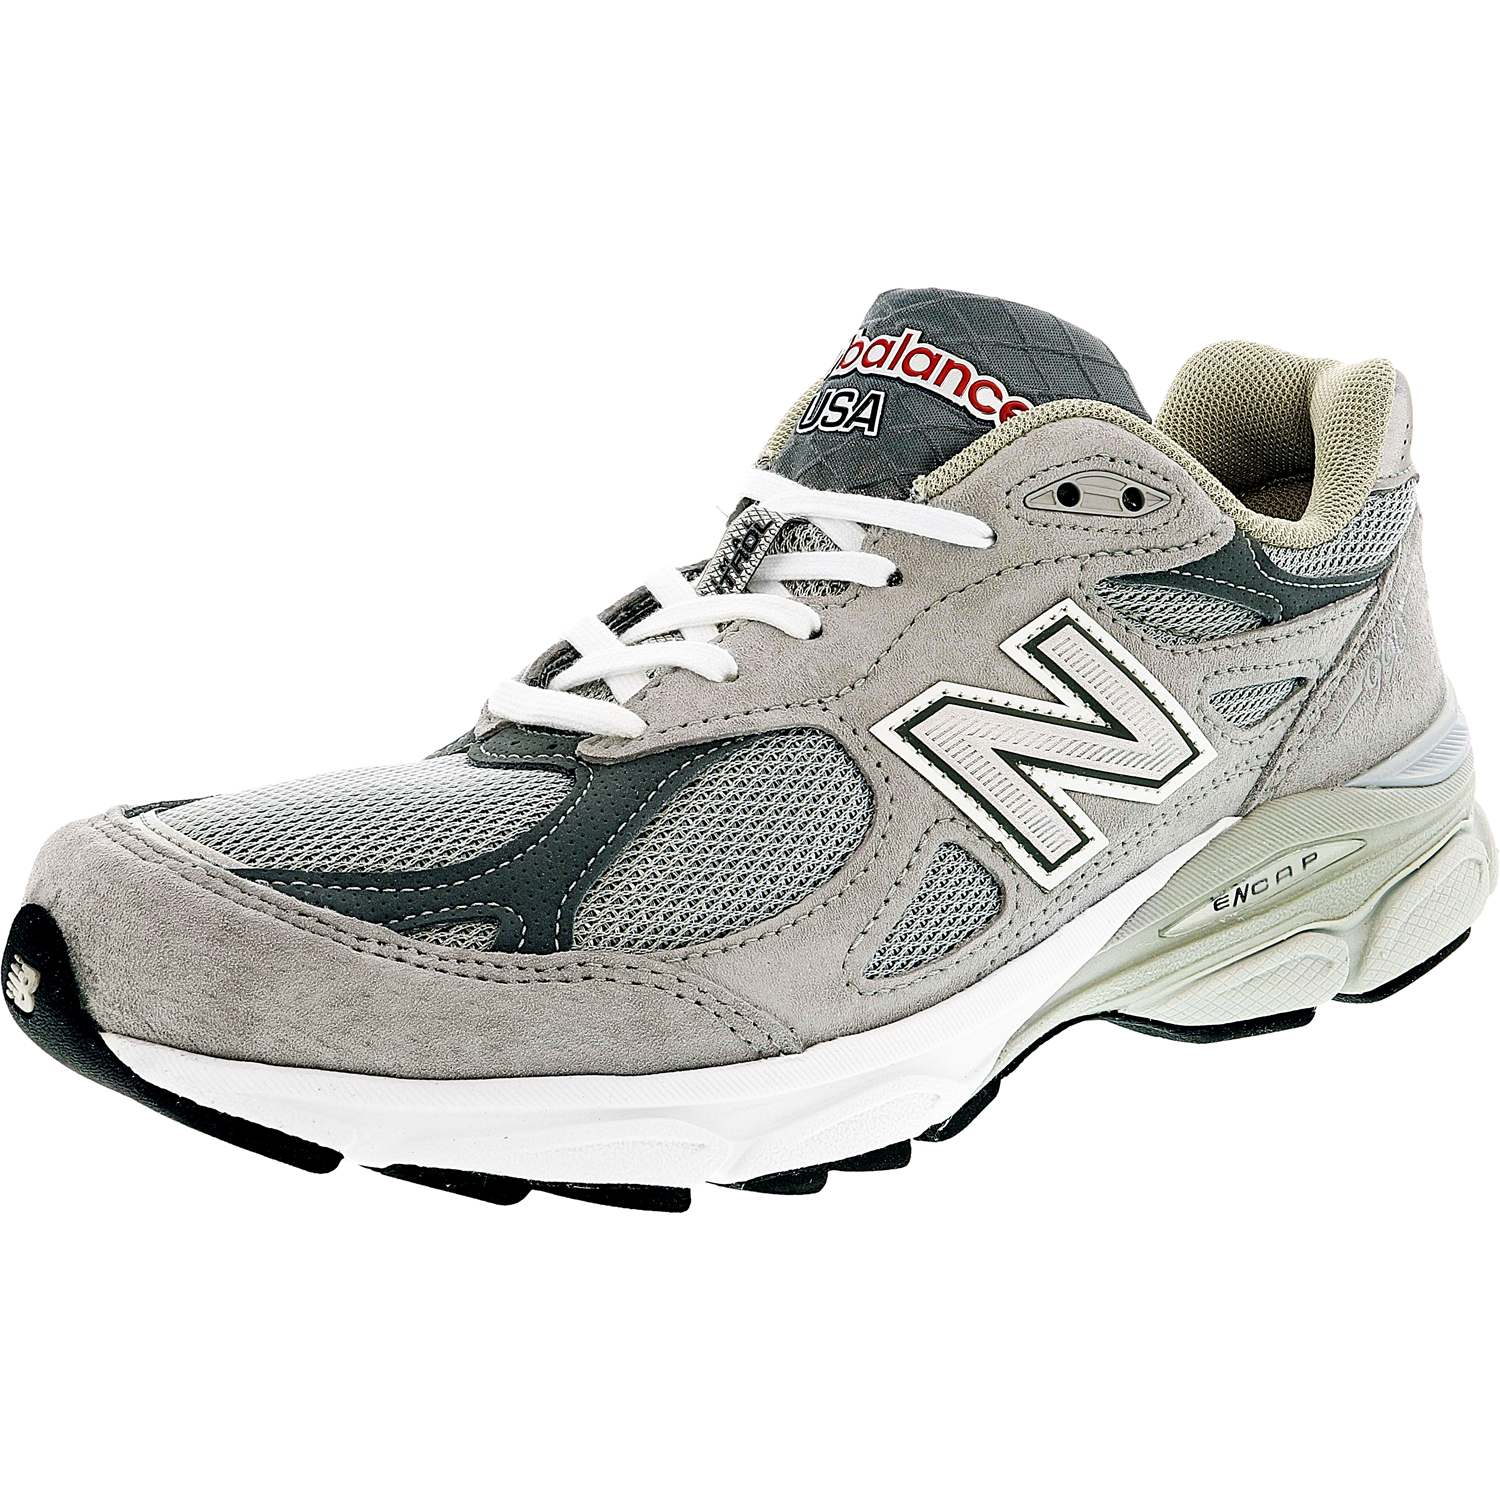 New Balance Men's M990 Gl3 Ankle-High Leather Running Sho...